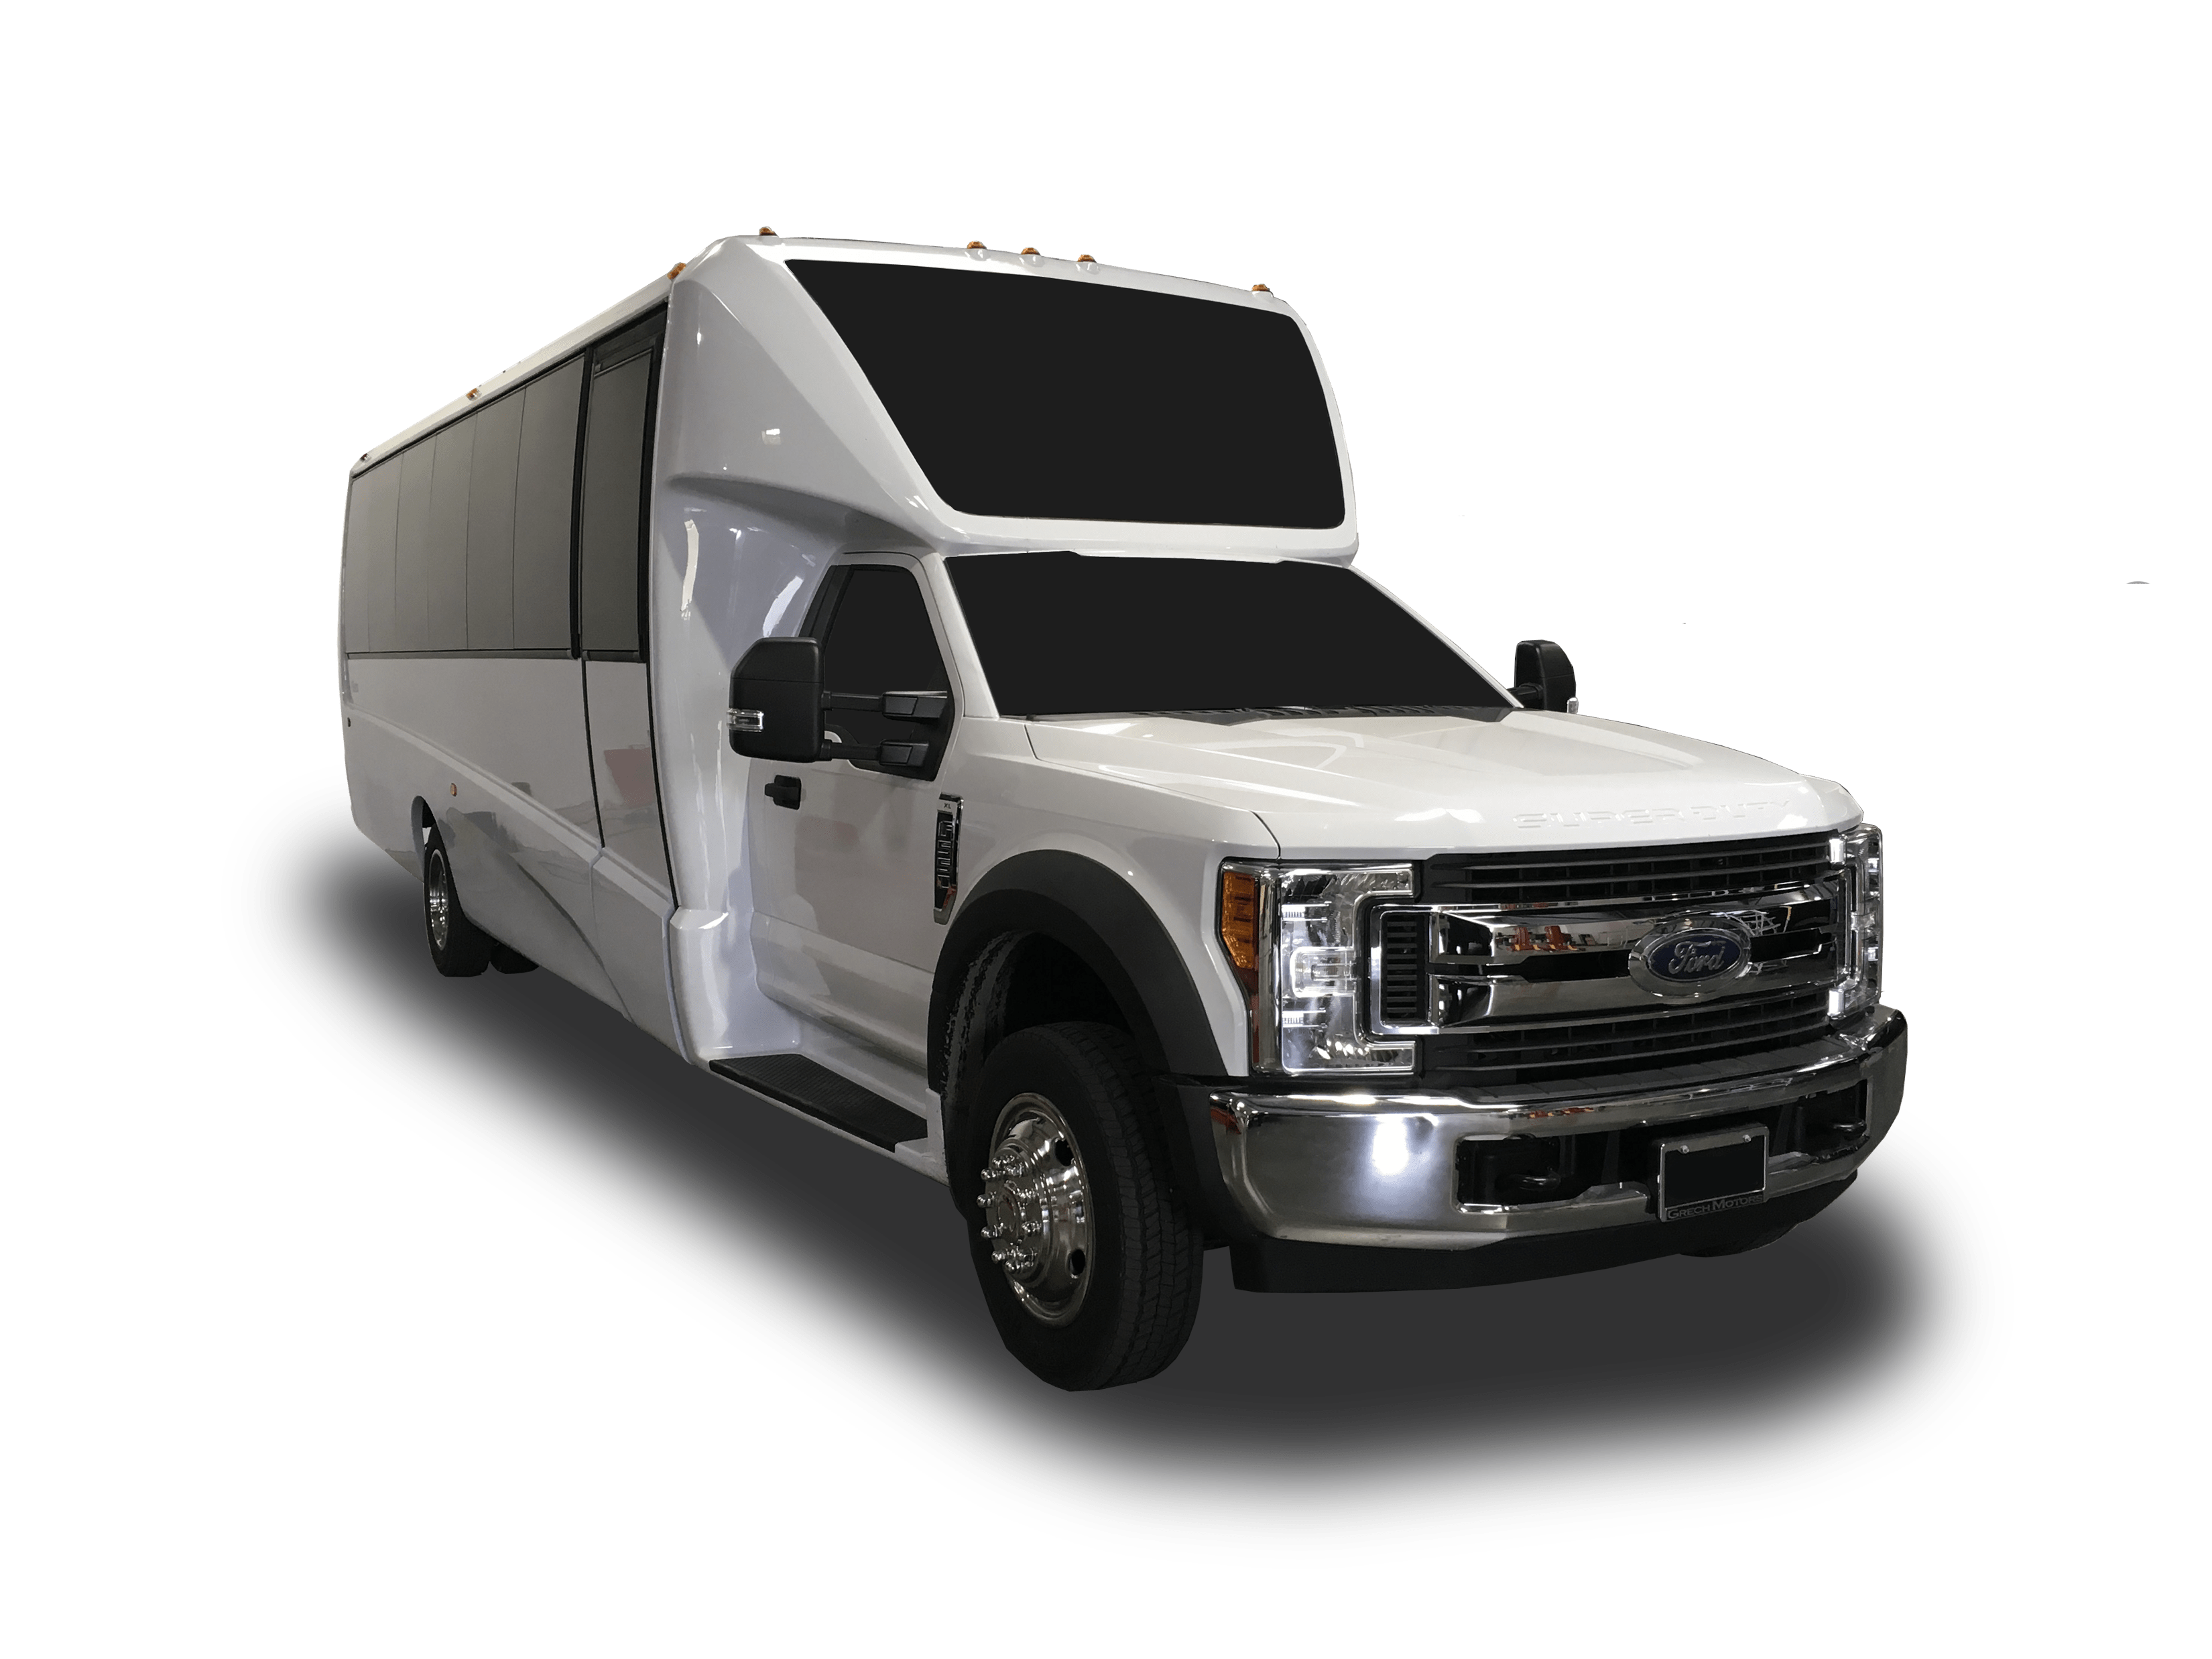 Limo Coach Party Bus rental for for sporting events in NJ - NY